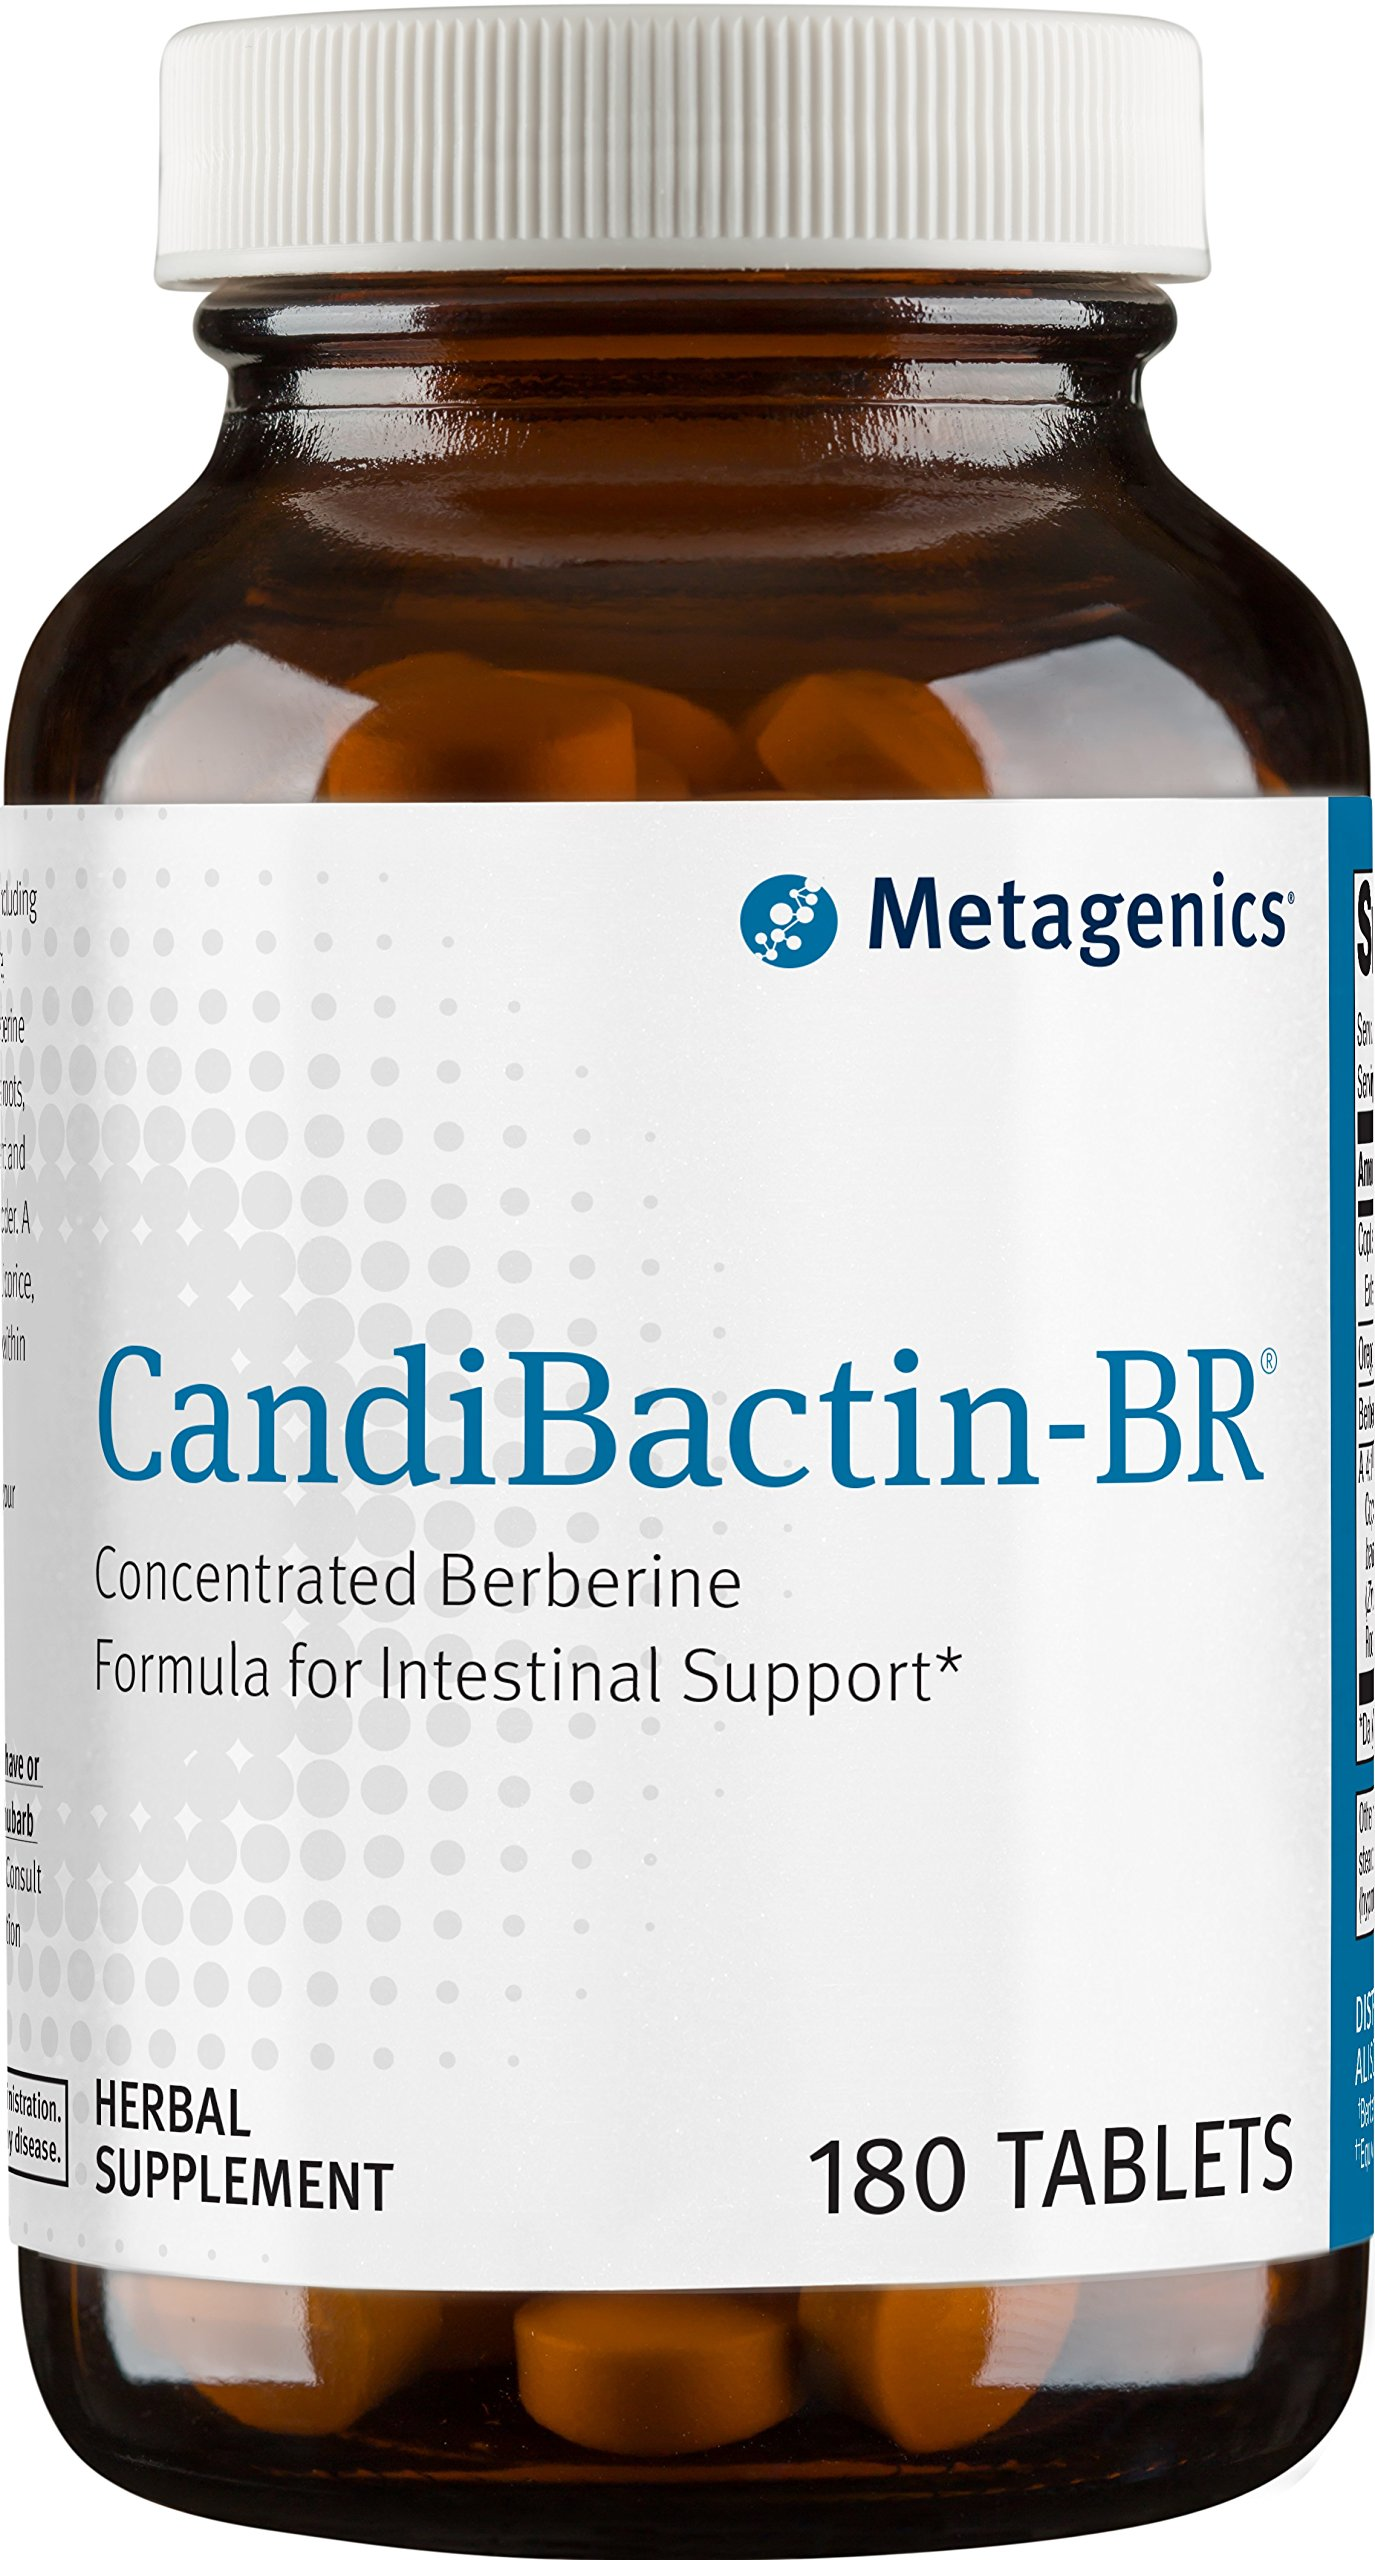 Metagenics CandiBactin-BR® – Concentrated Berberine Formula for Intestinal Support * | 180 count